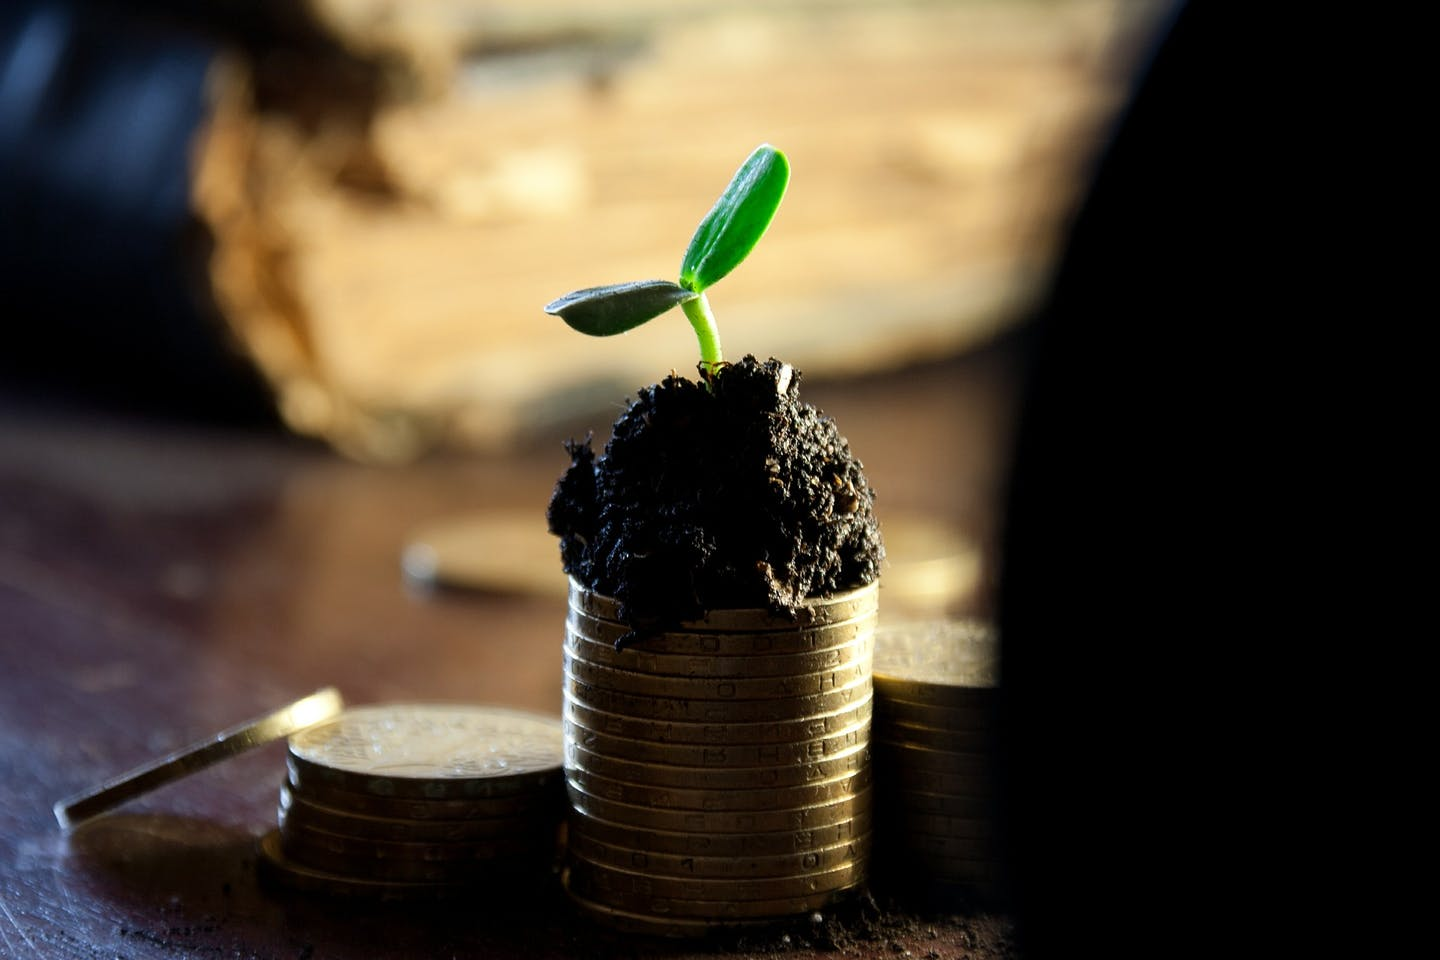 Little sprout growing on top of a pile of coins